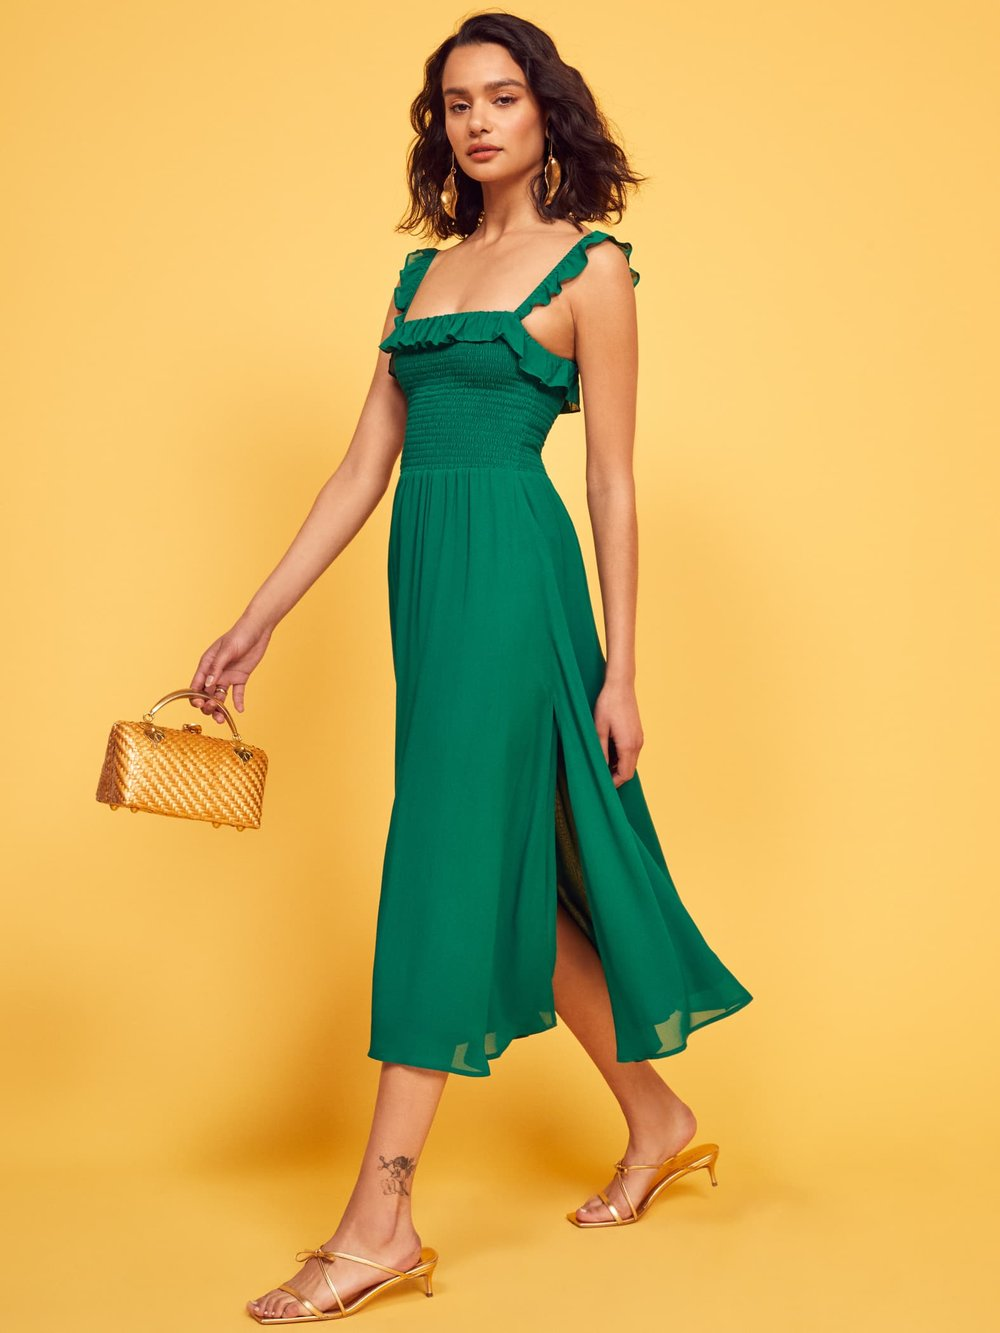 Reformation Siesta Dress - This particular shade of green slays me every time. And here it is, in full glory, on this 100% viscose dress that's sustainably made in Los Angeles.